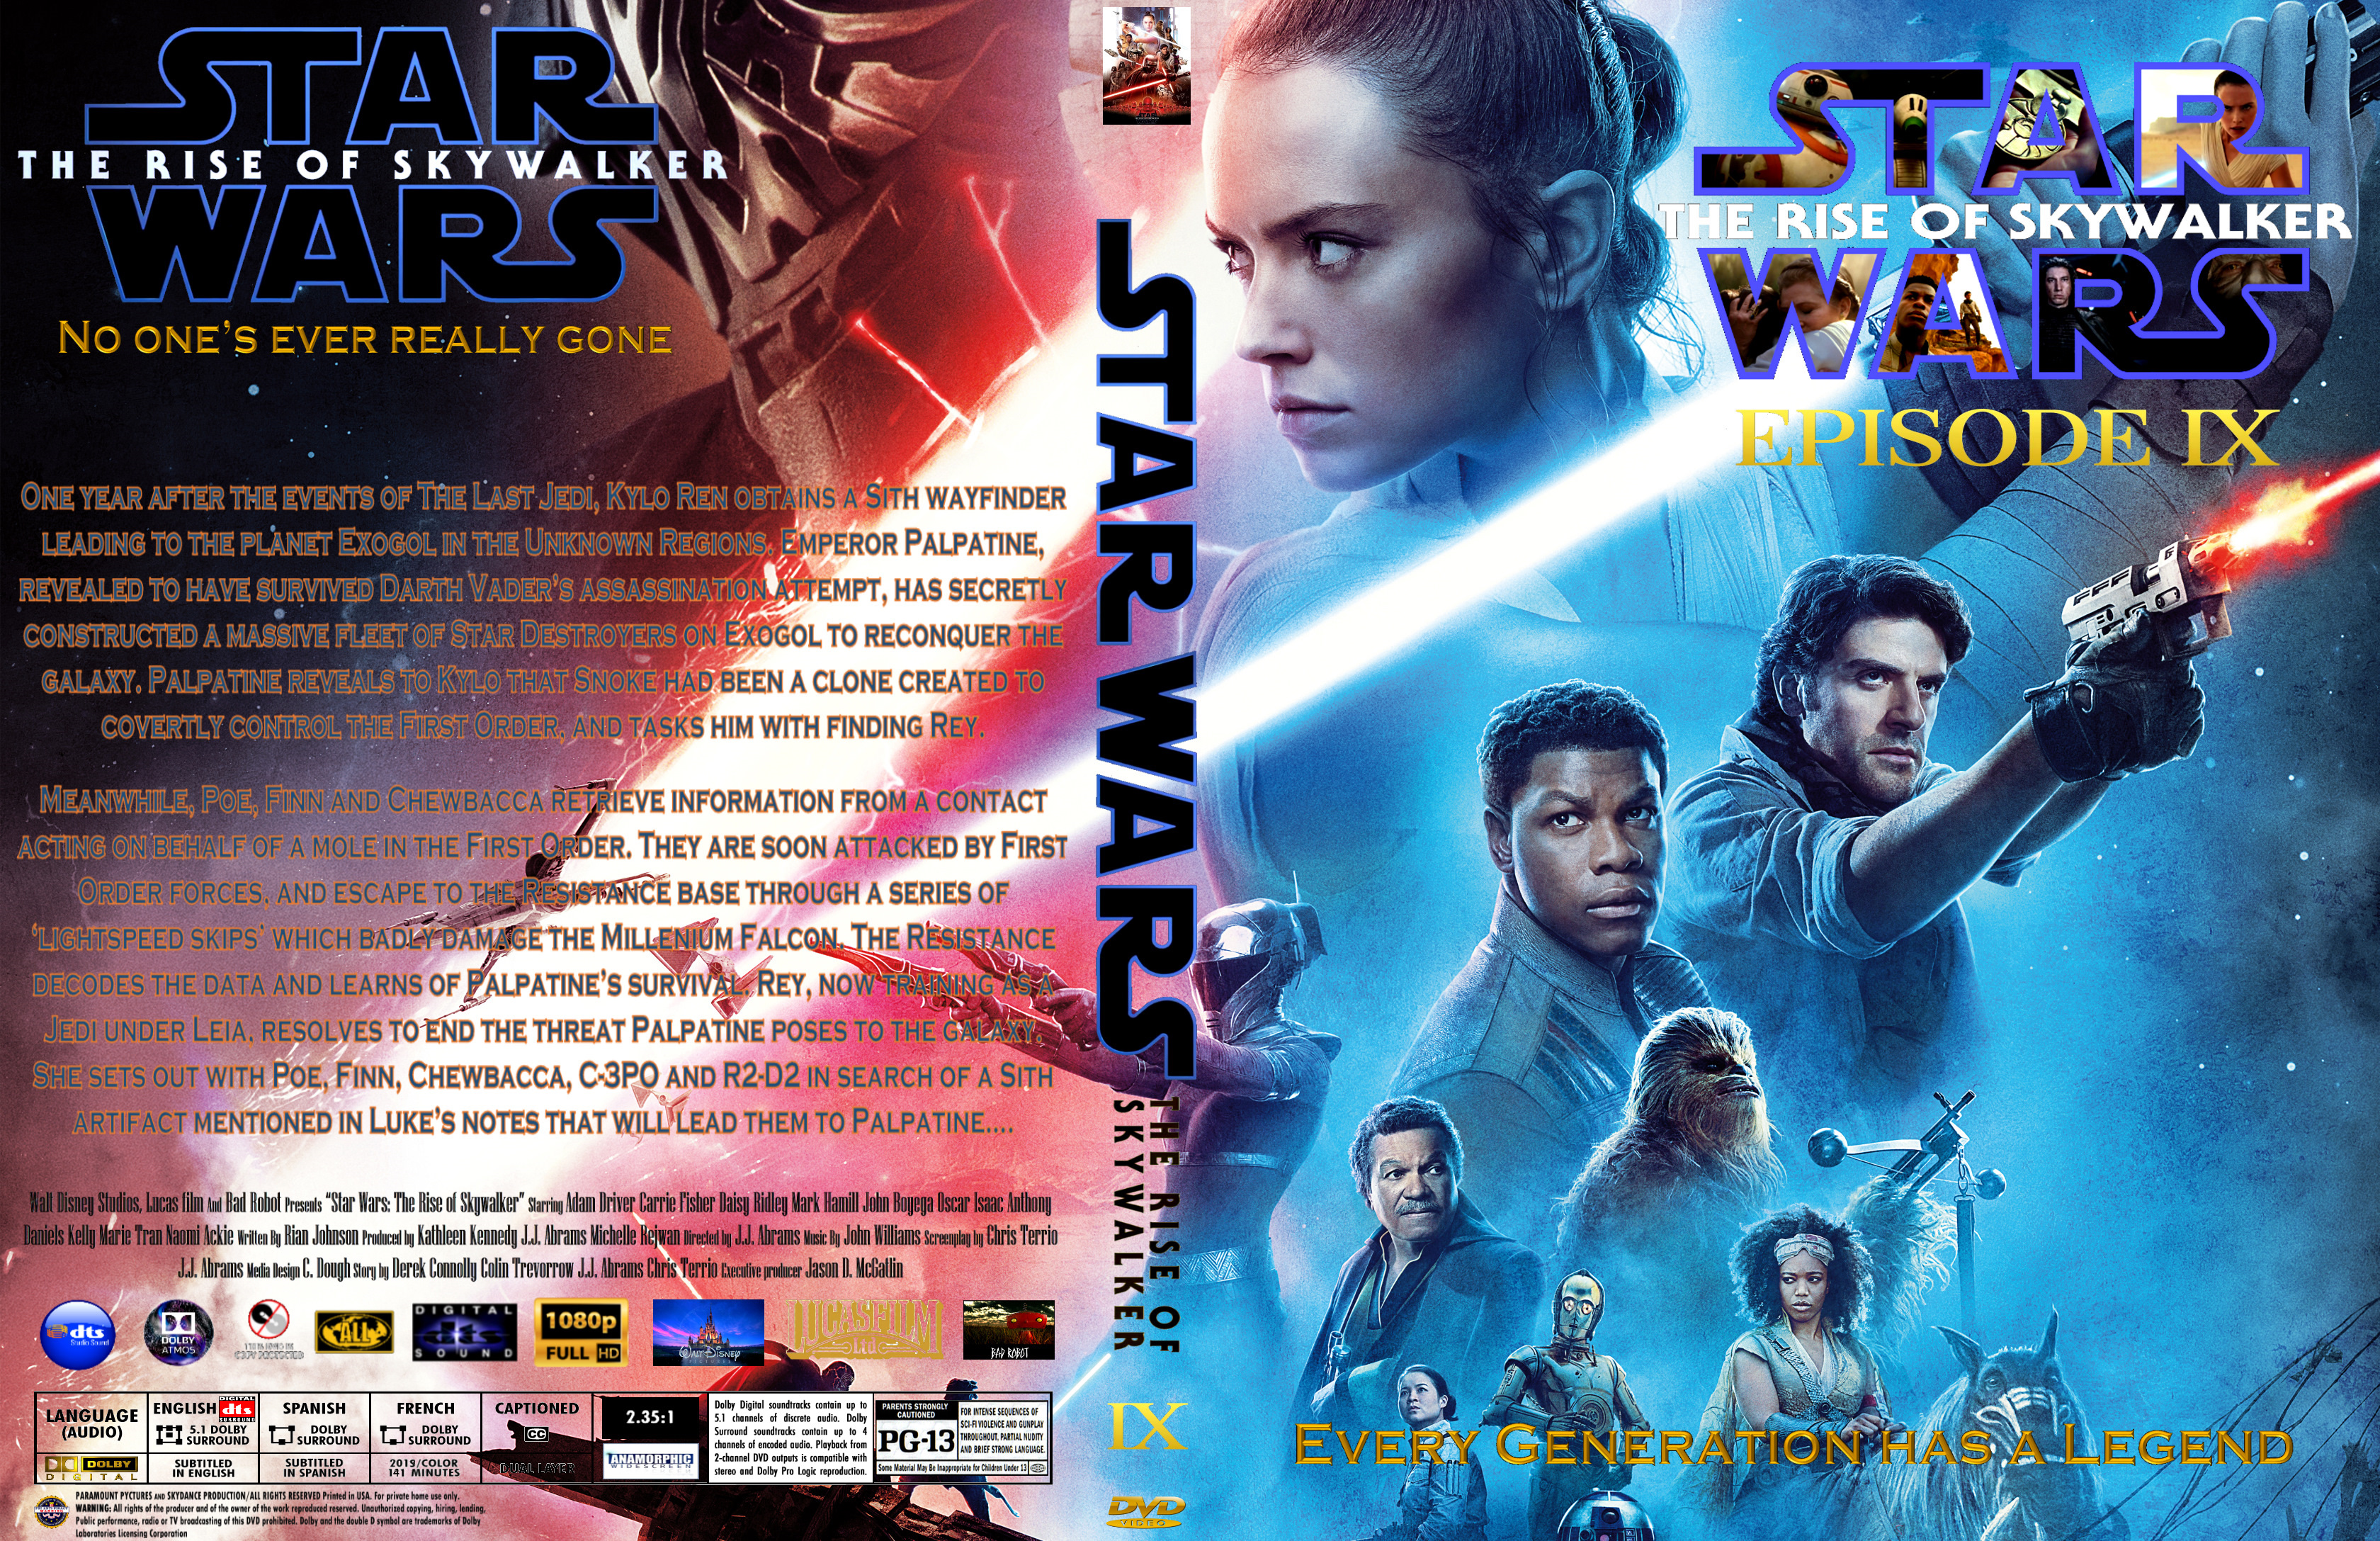 Covers Box Sk Star Wars The Rise Of Skywalker 2019 Fixed High Quality Dvd Blueray Movie